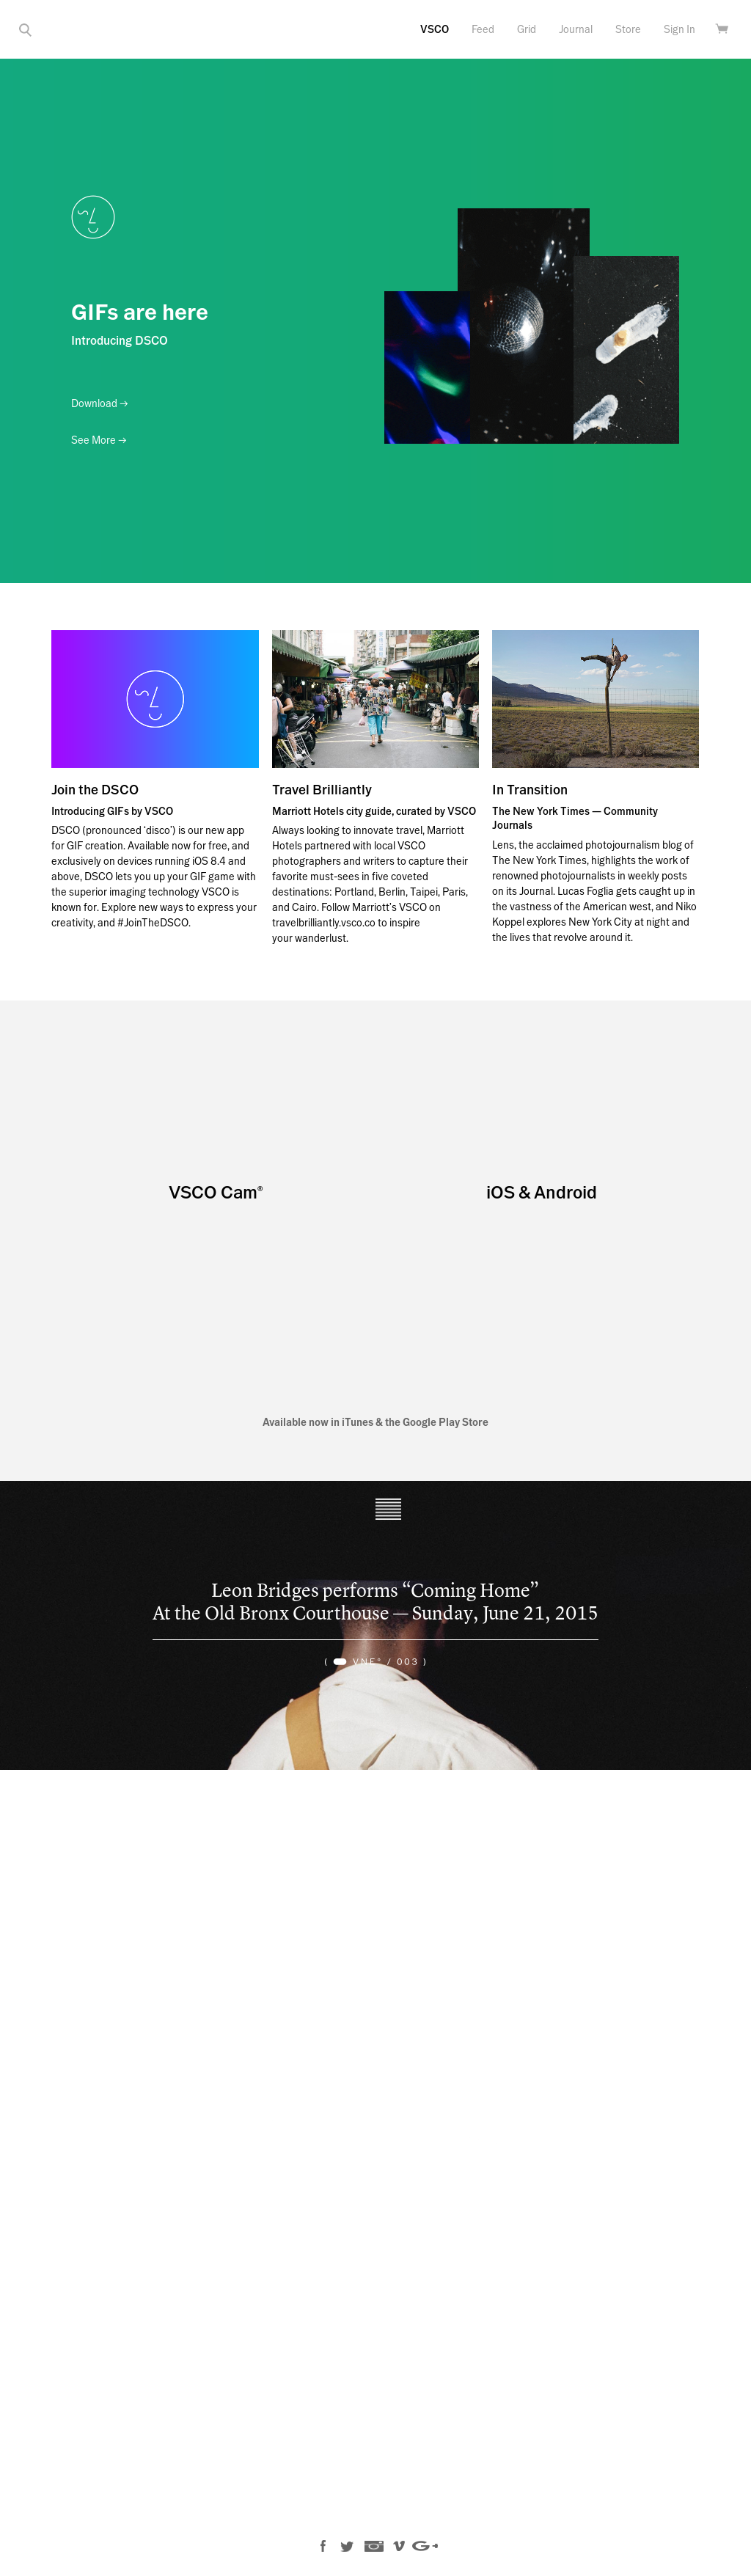 VSCO Competitors, Revenue and Employees - Owler Company Profile